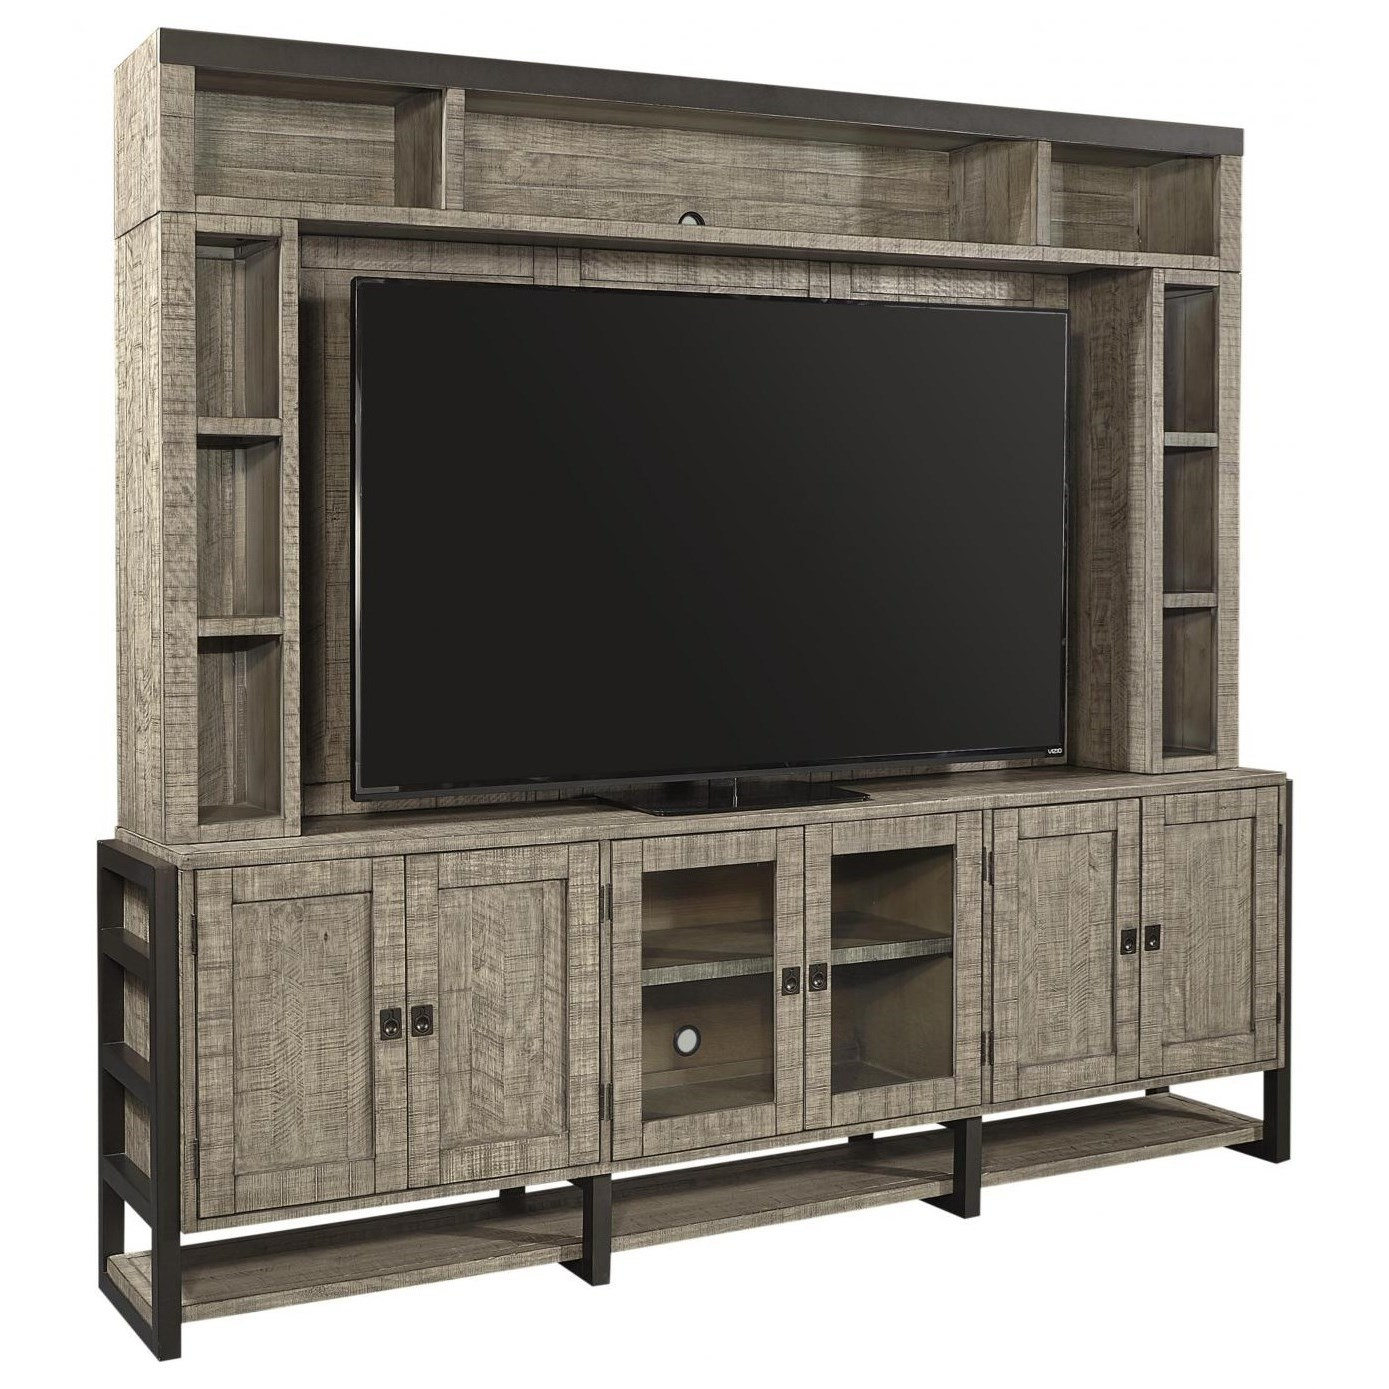 Grayson TV Stand with Hutch by Aspenhome at Stoney Creek Furniture